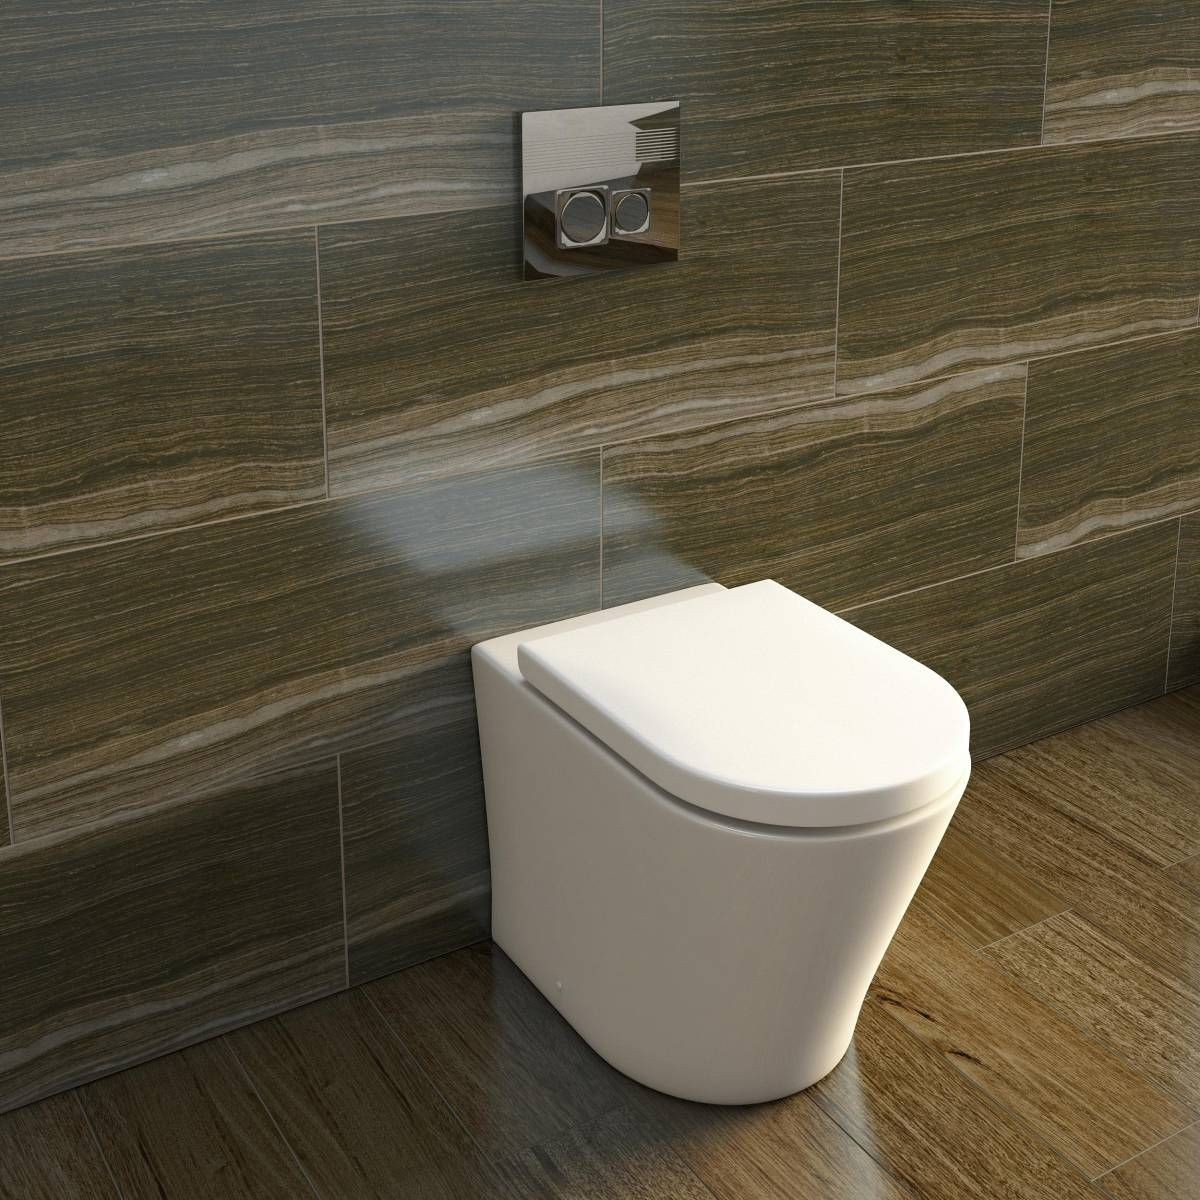 Sale 109 Quid Including Seat Arc Back To Wall Toilet Including Soft Closing Seat Victoria Plumb Back To Wall Toilets Wall Hung Toilet Toilet